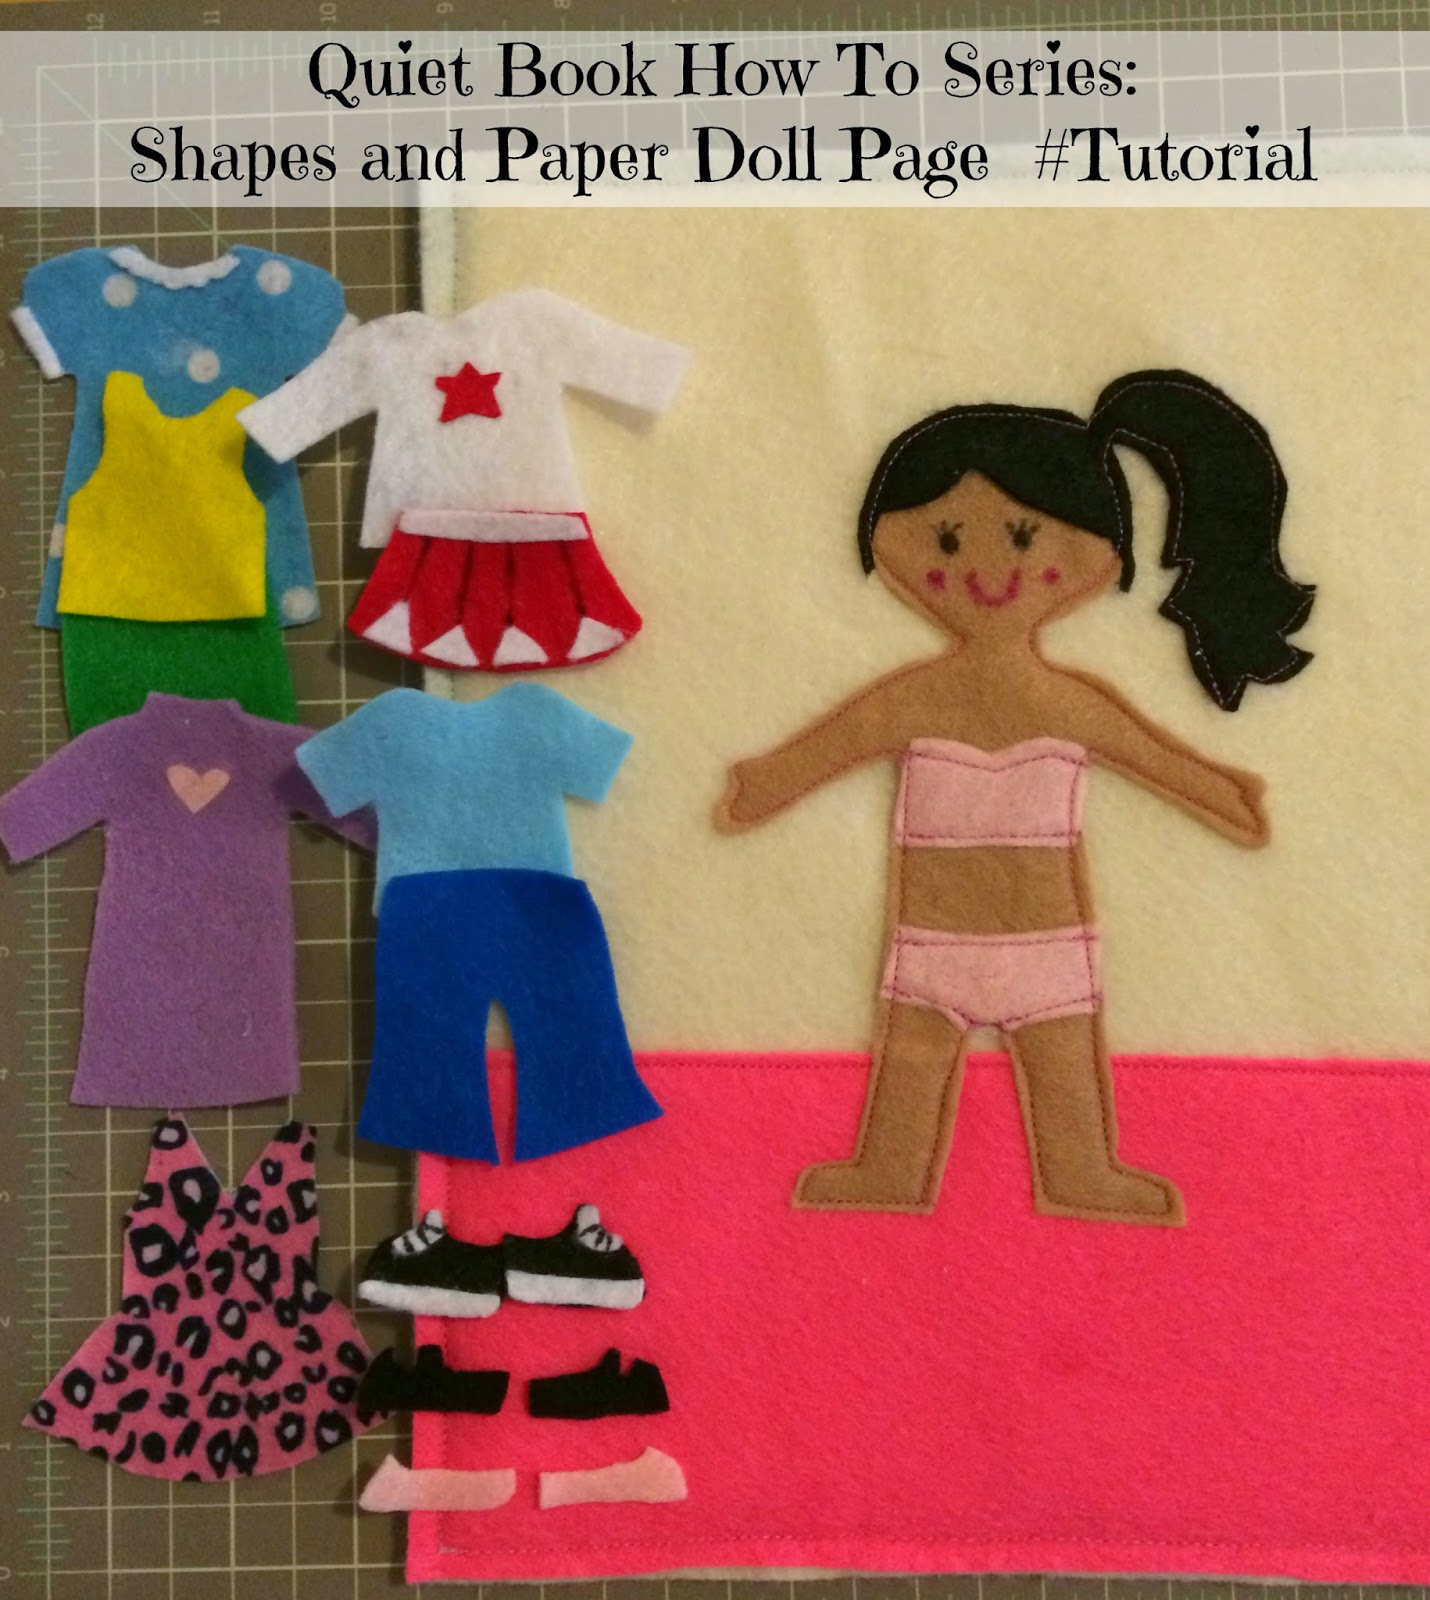 felt dress up doll template - quiet book how to series shapes and paper doll page